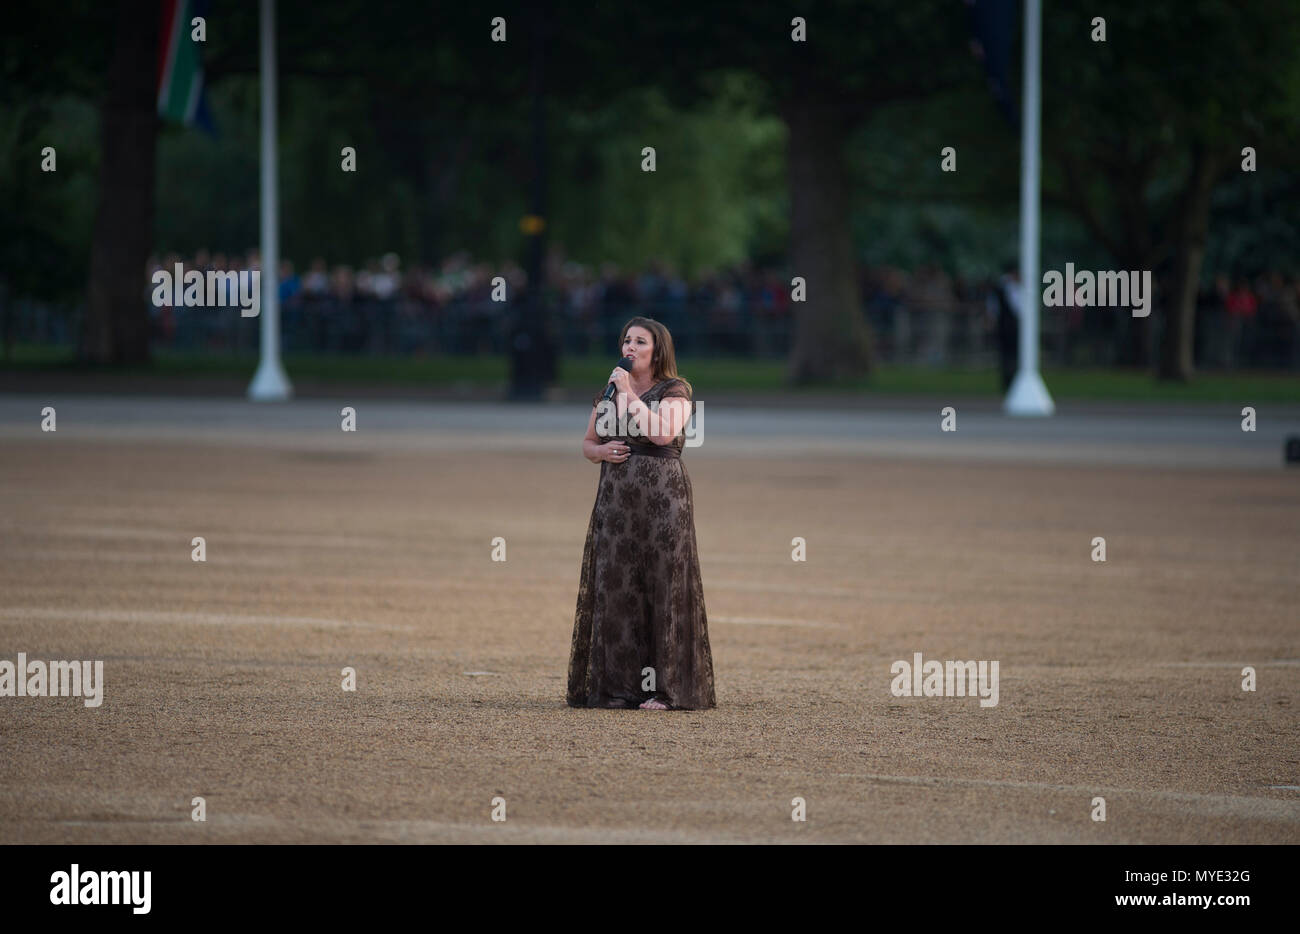 Horse Guards, London, UK. 6 June, 2018. Sam Bailey, winner of X Factor performs in front of VIP guests and the Massed Bands of the Household Division on Horse Guards Parade in the annual evening celebration that is the Household Division's Beating Retreat. Credit: Malcolm Park editorial/Alamy Live News - Stock Image